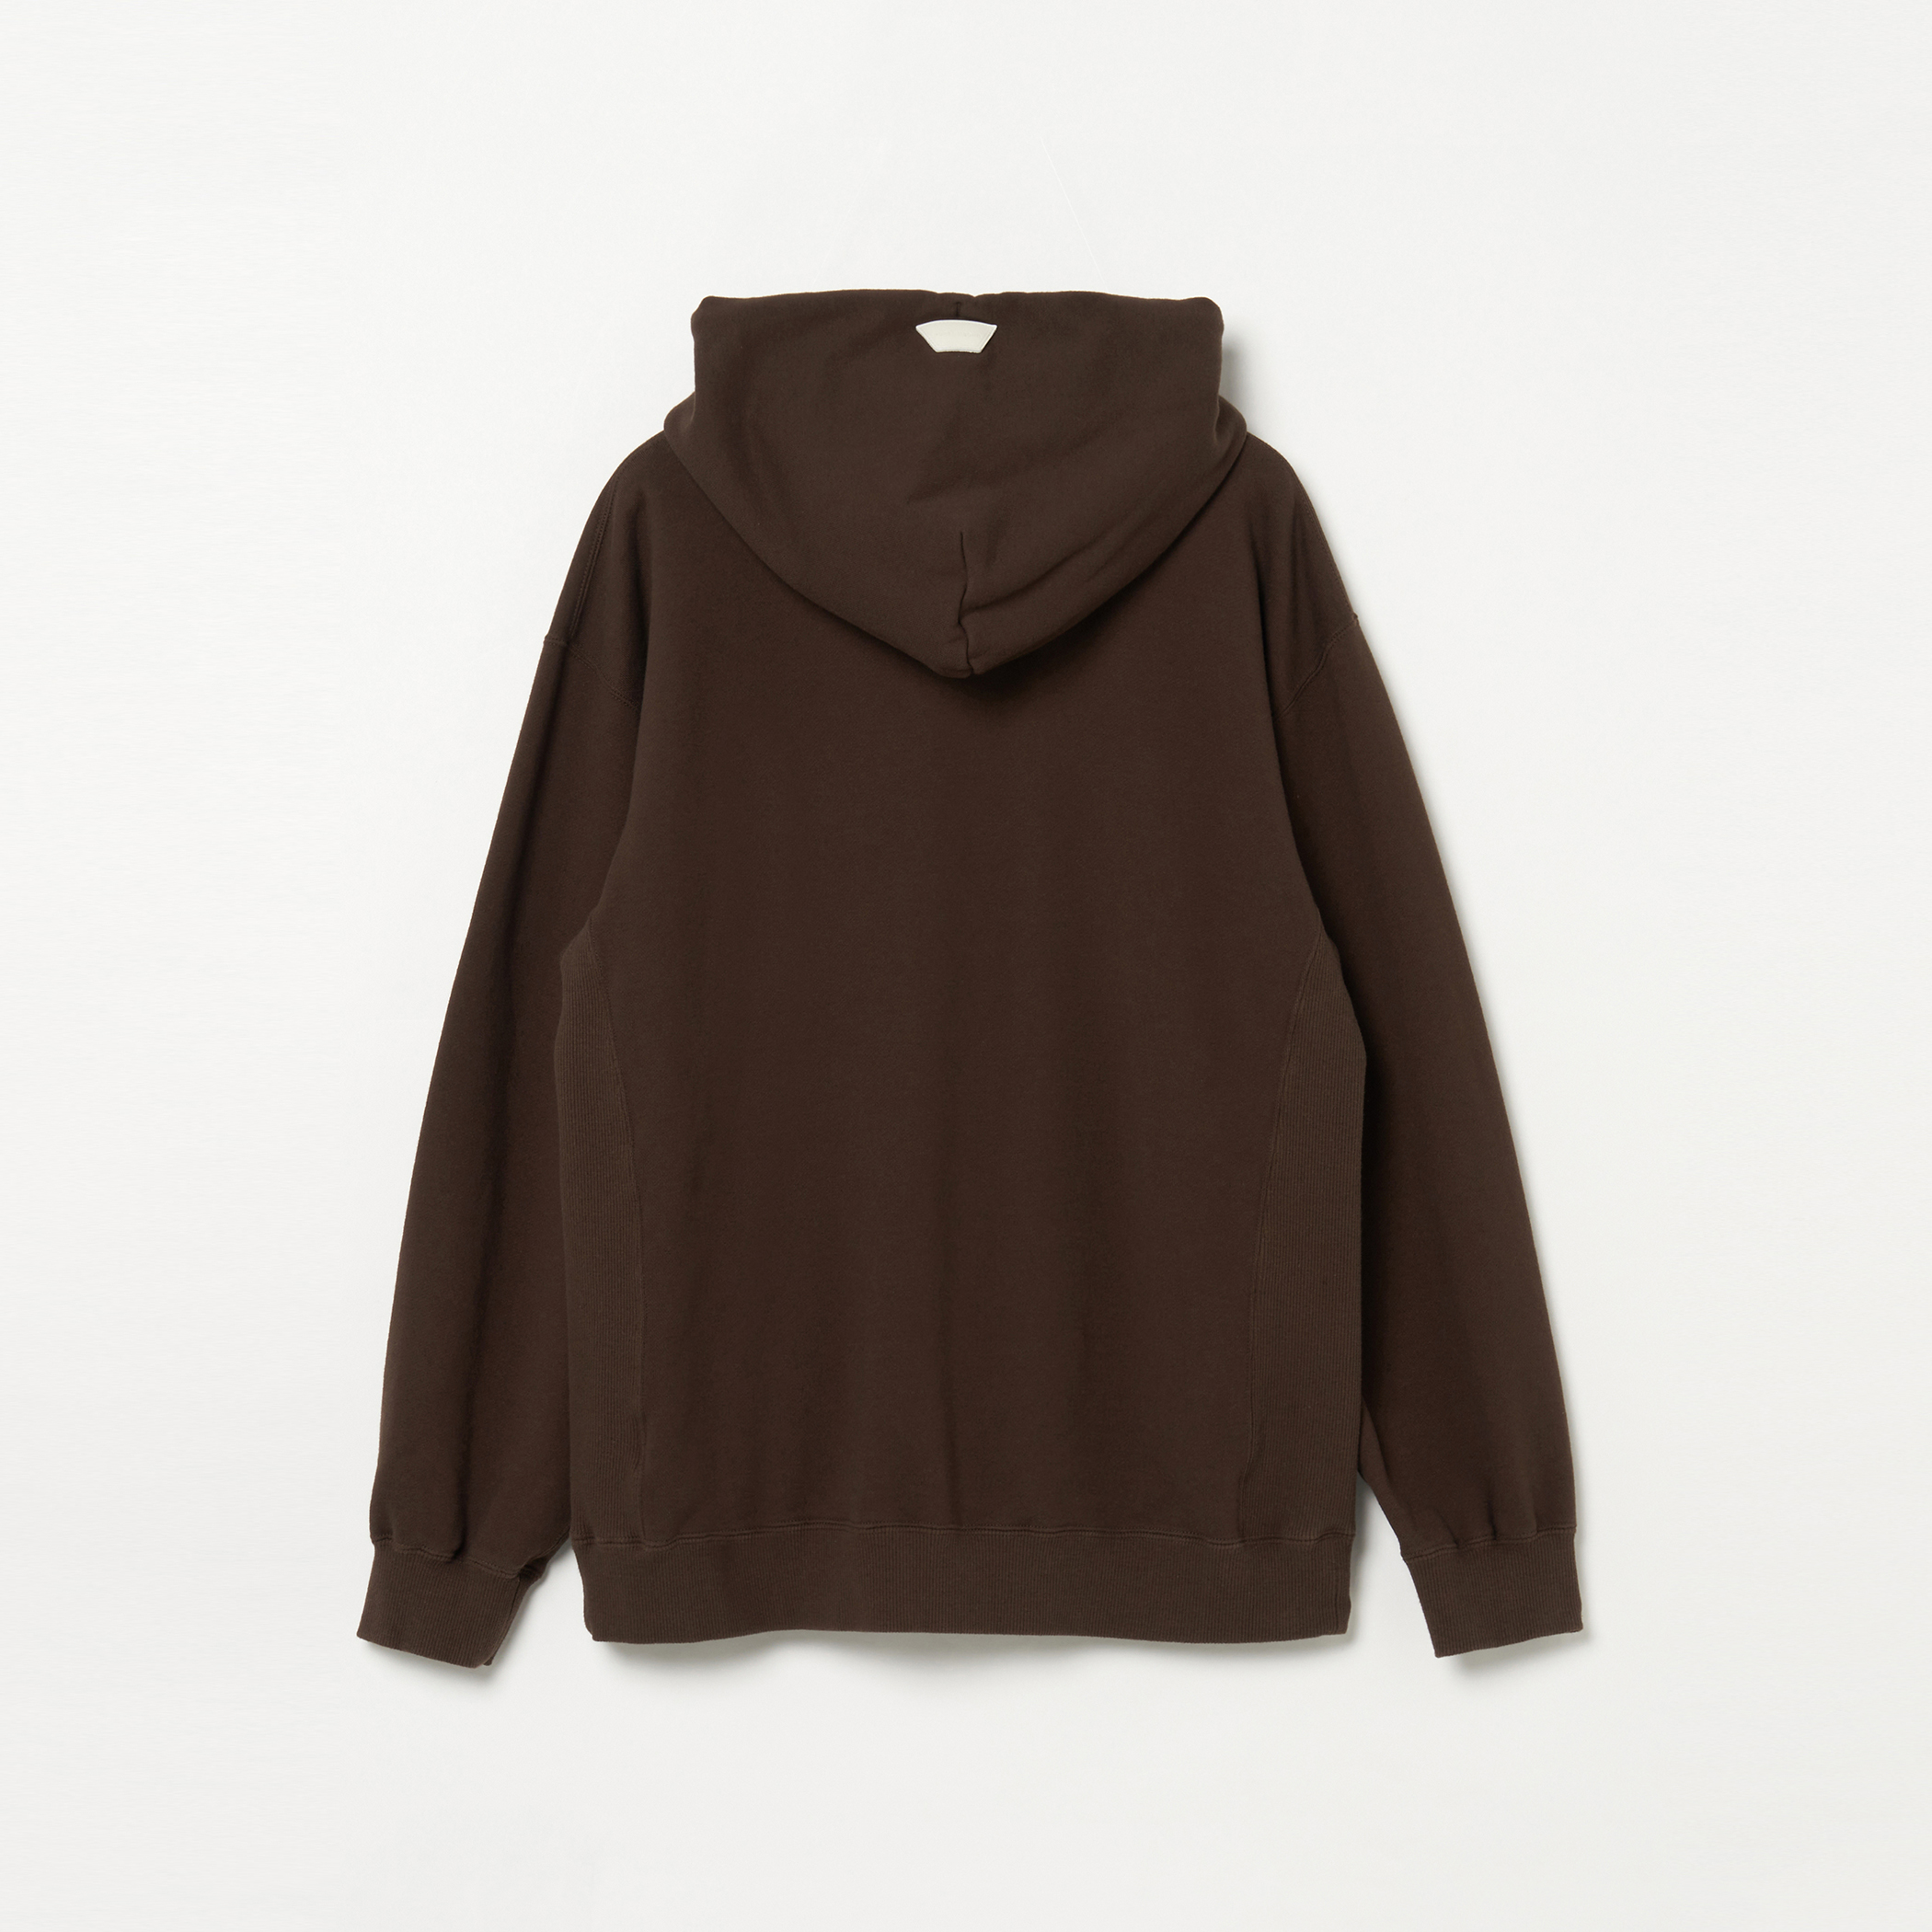 FSO EMBRO HOODIE 詳細画像 Brown 7